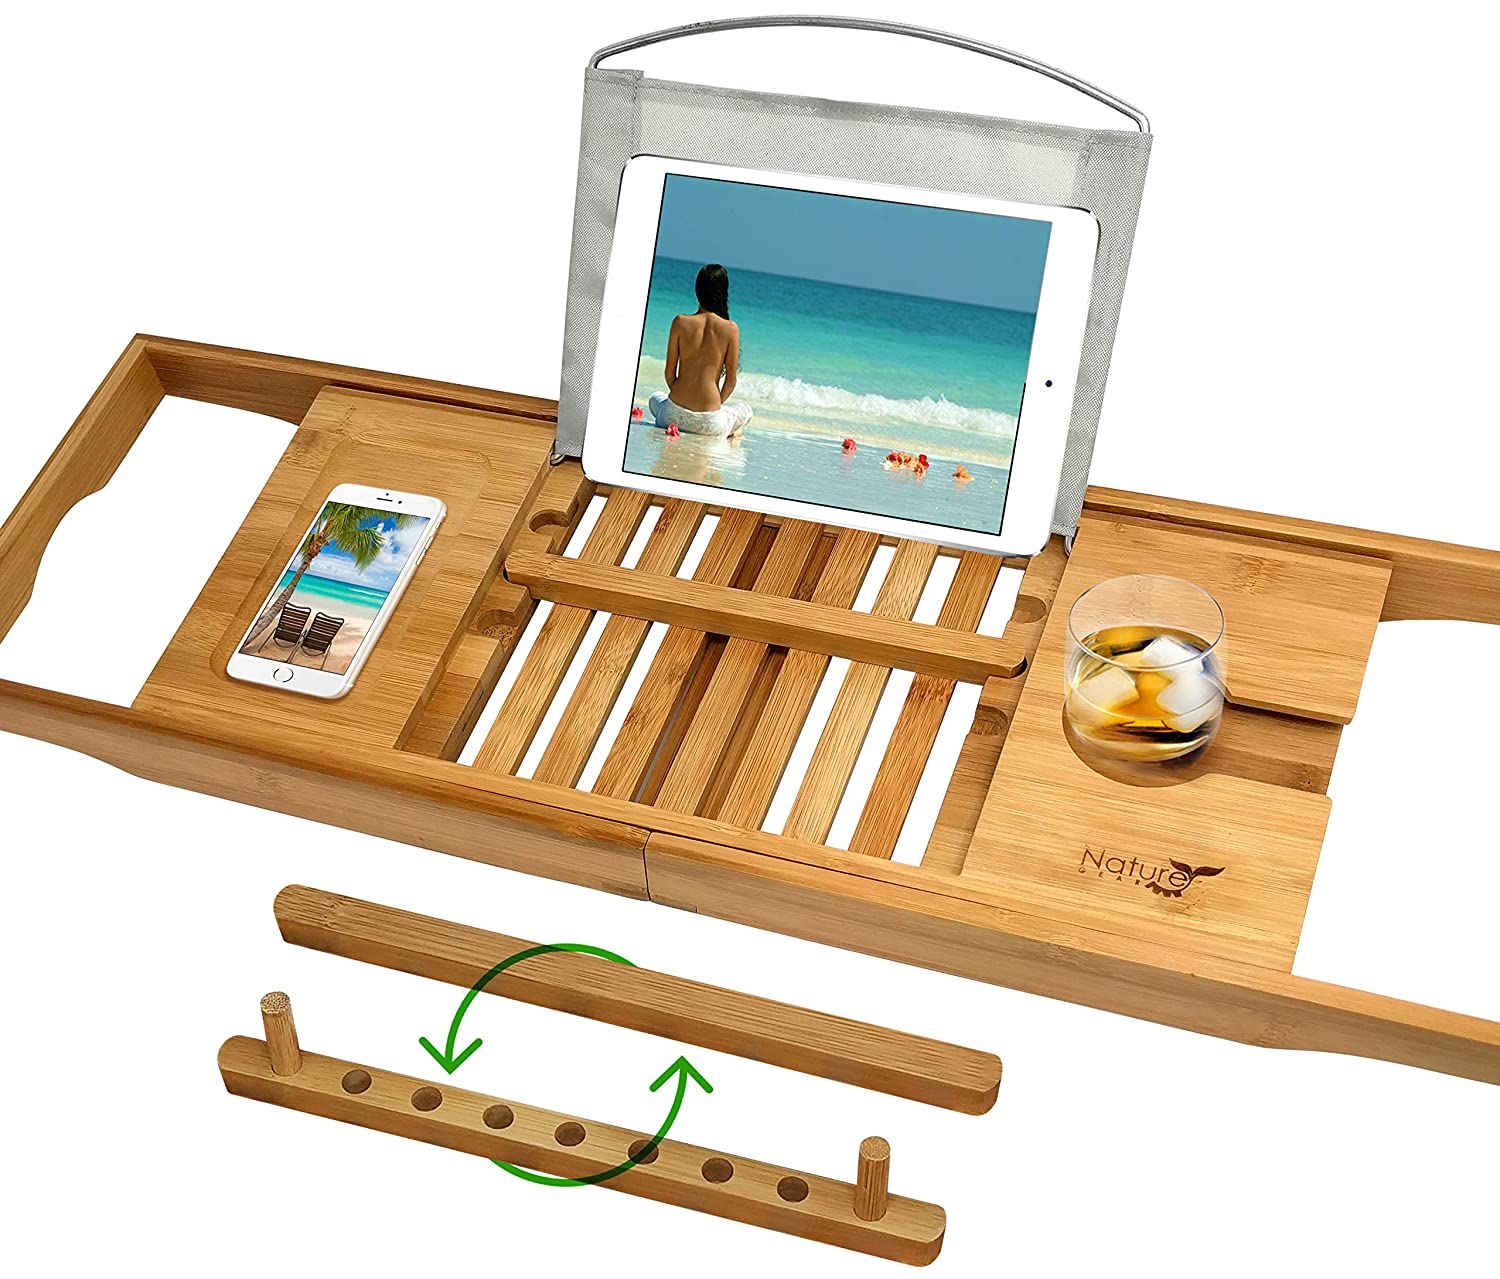 UPGRADED 2019 Bamboo Premium Luxury Bath Caddy - Holds Any Book, Magazine, Tablet or Smartphone - Bathtub Tray with Extending Arms Nature Gear COMIN18JU009857